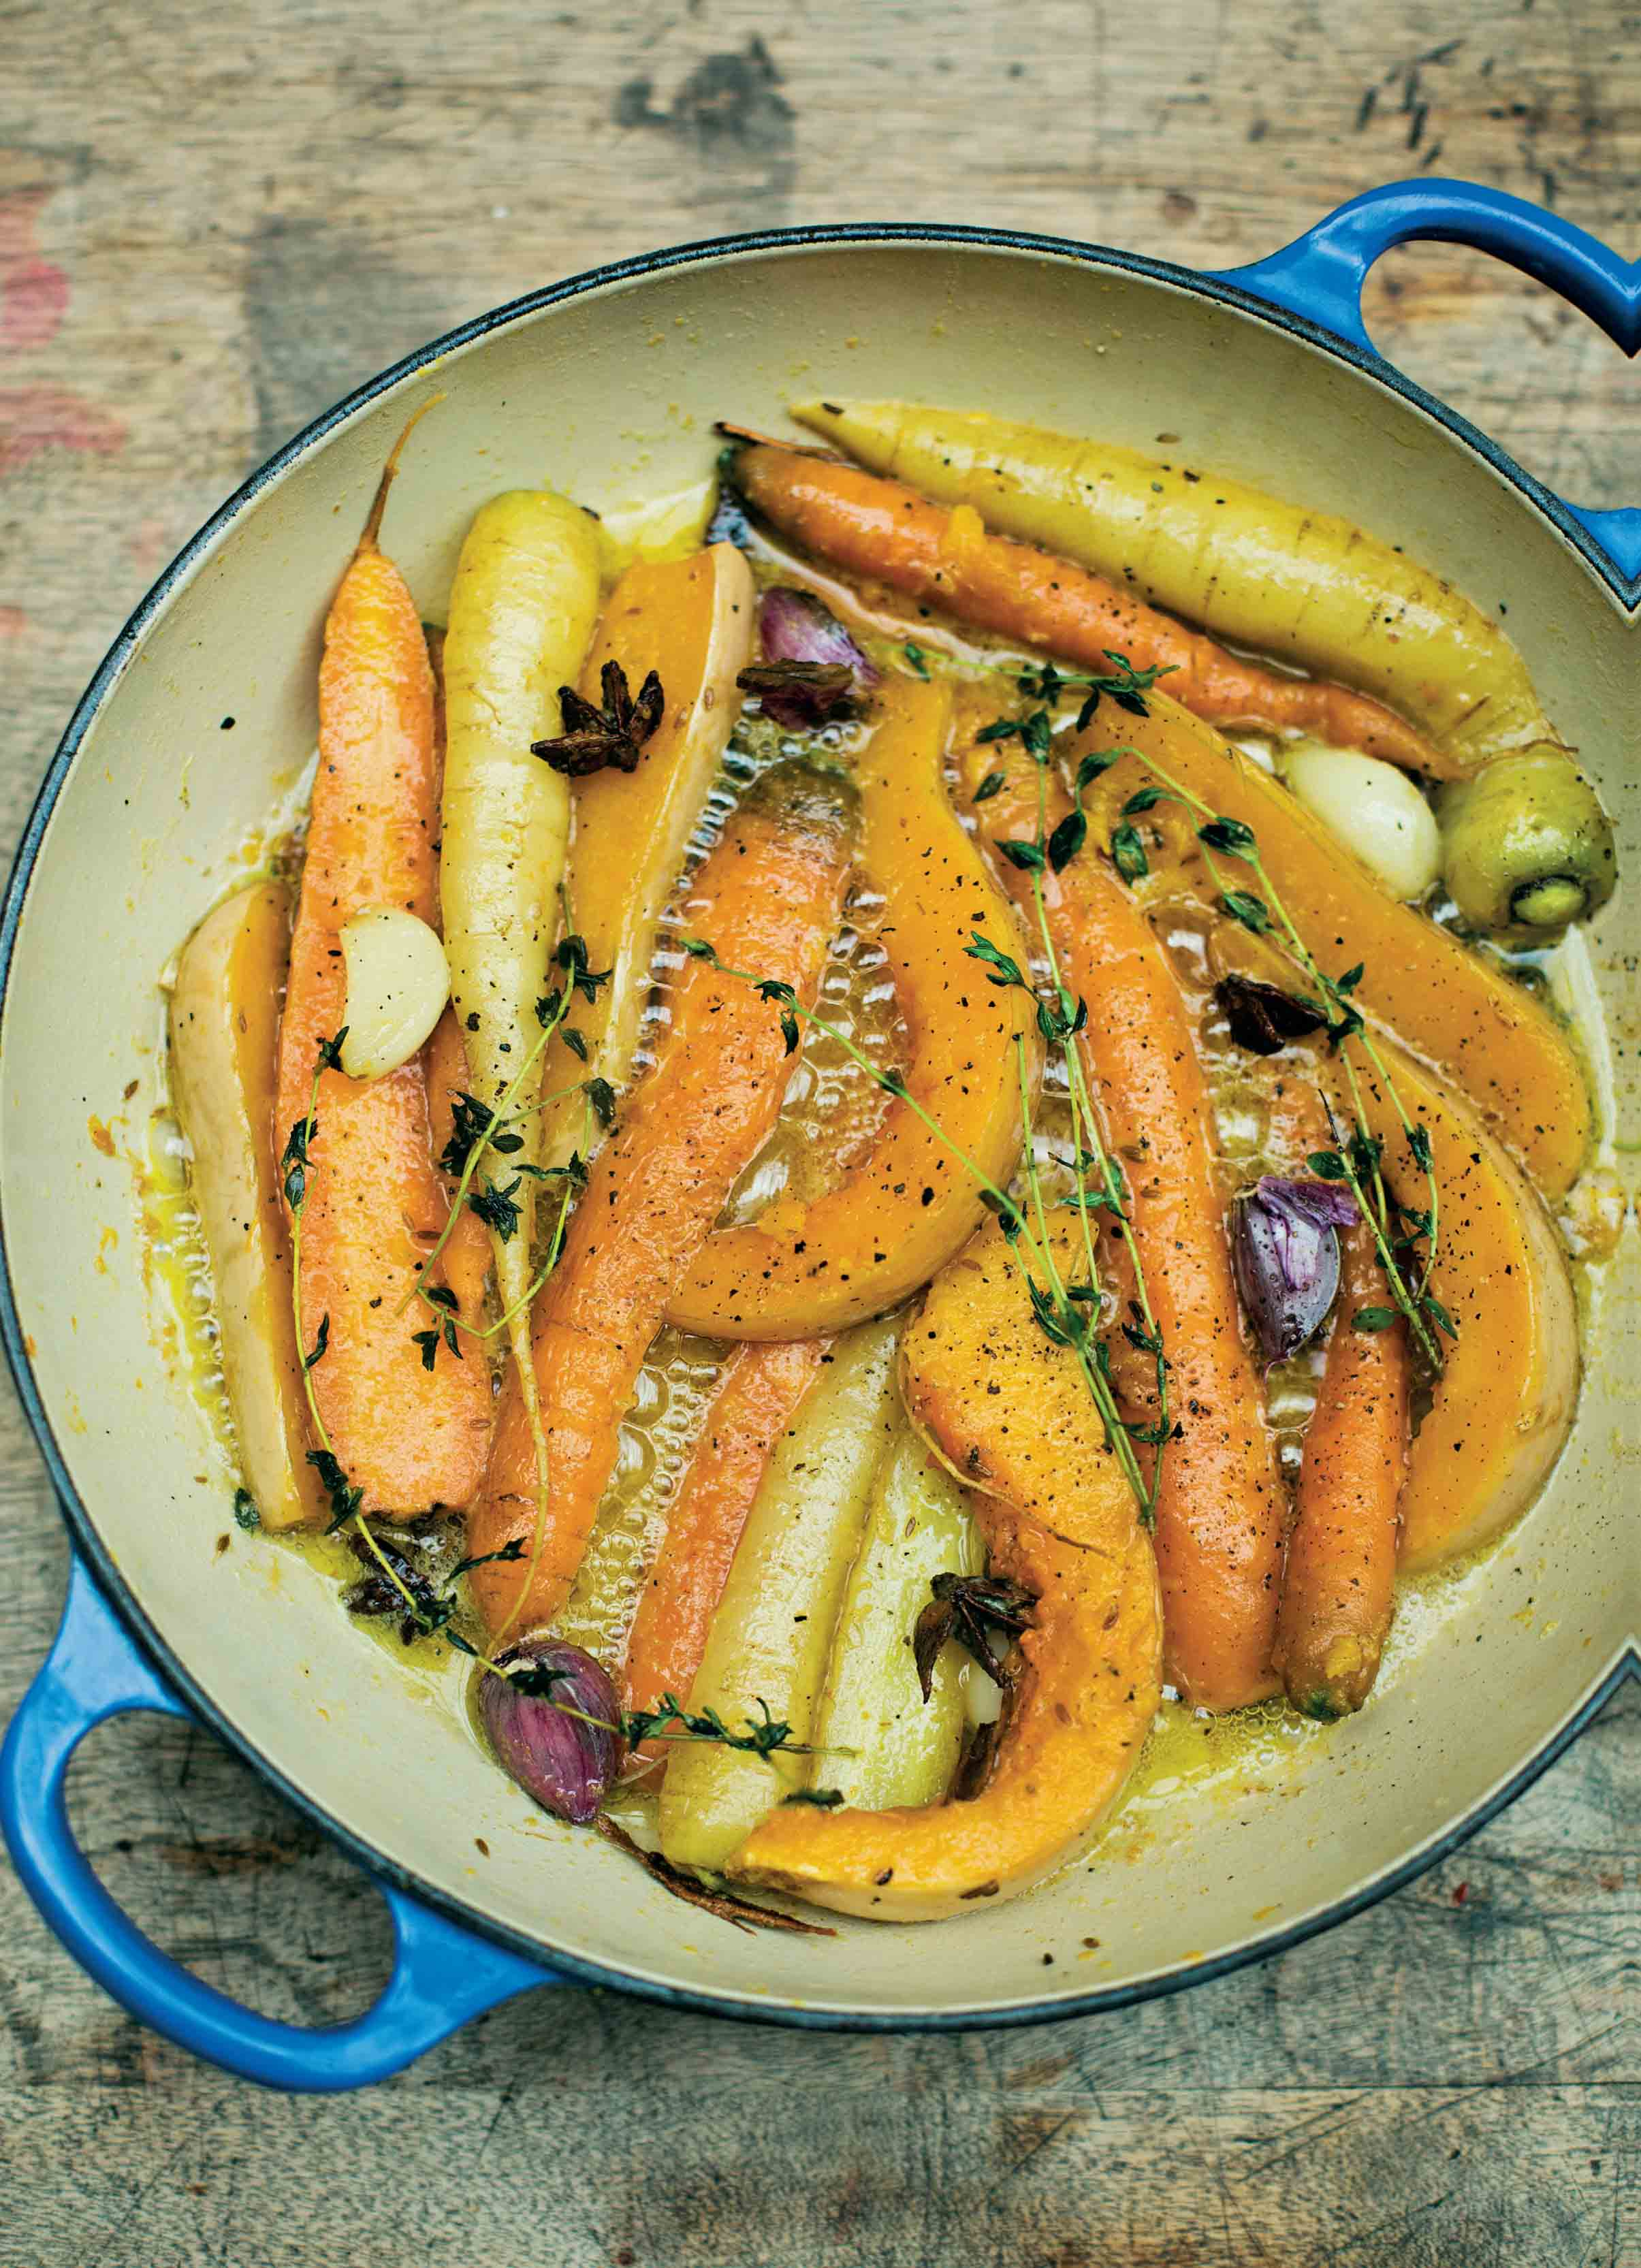 Caramelised carrots with butternut squash and star anise